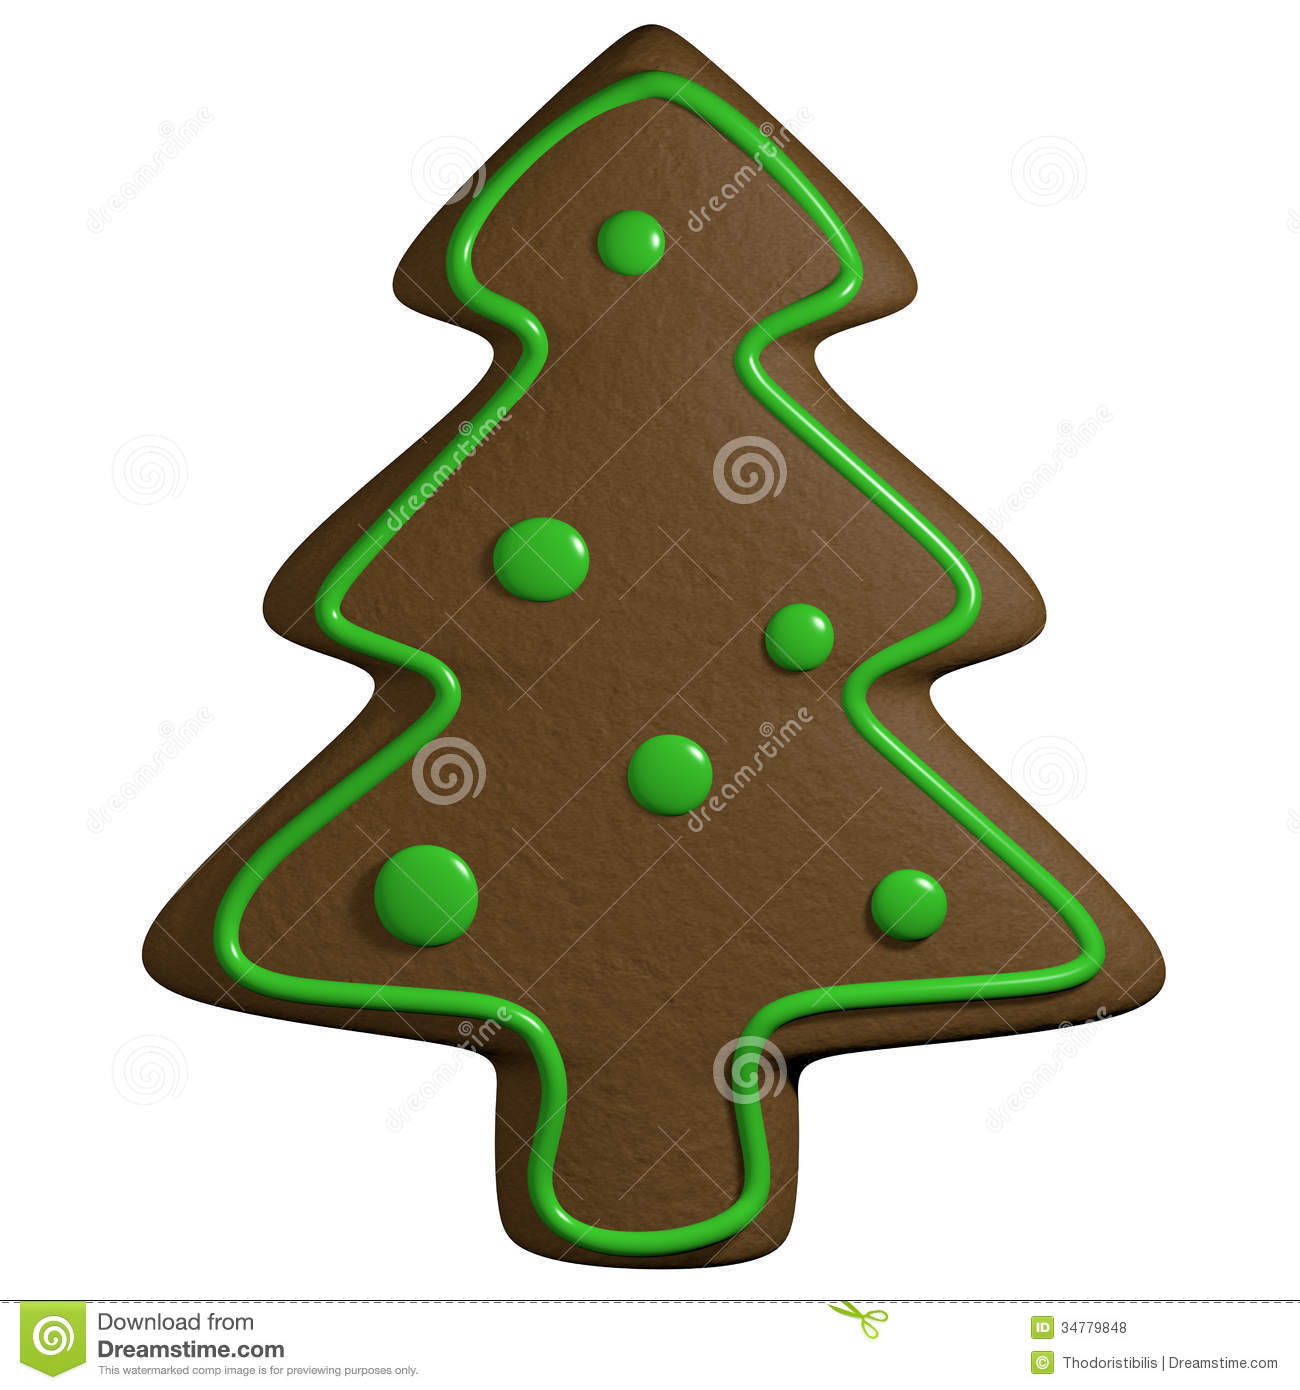 Gingerbread d cartoon christmas pine tree with ornaments